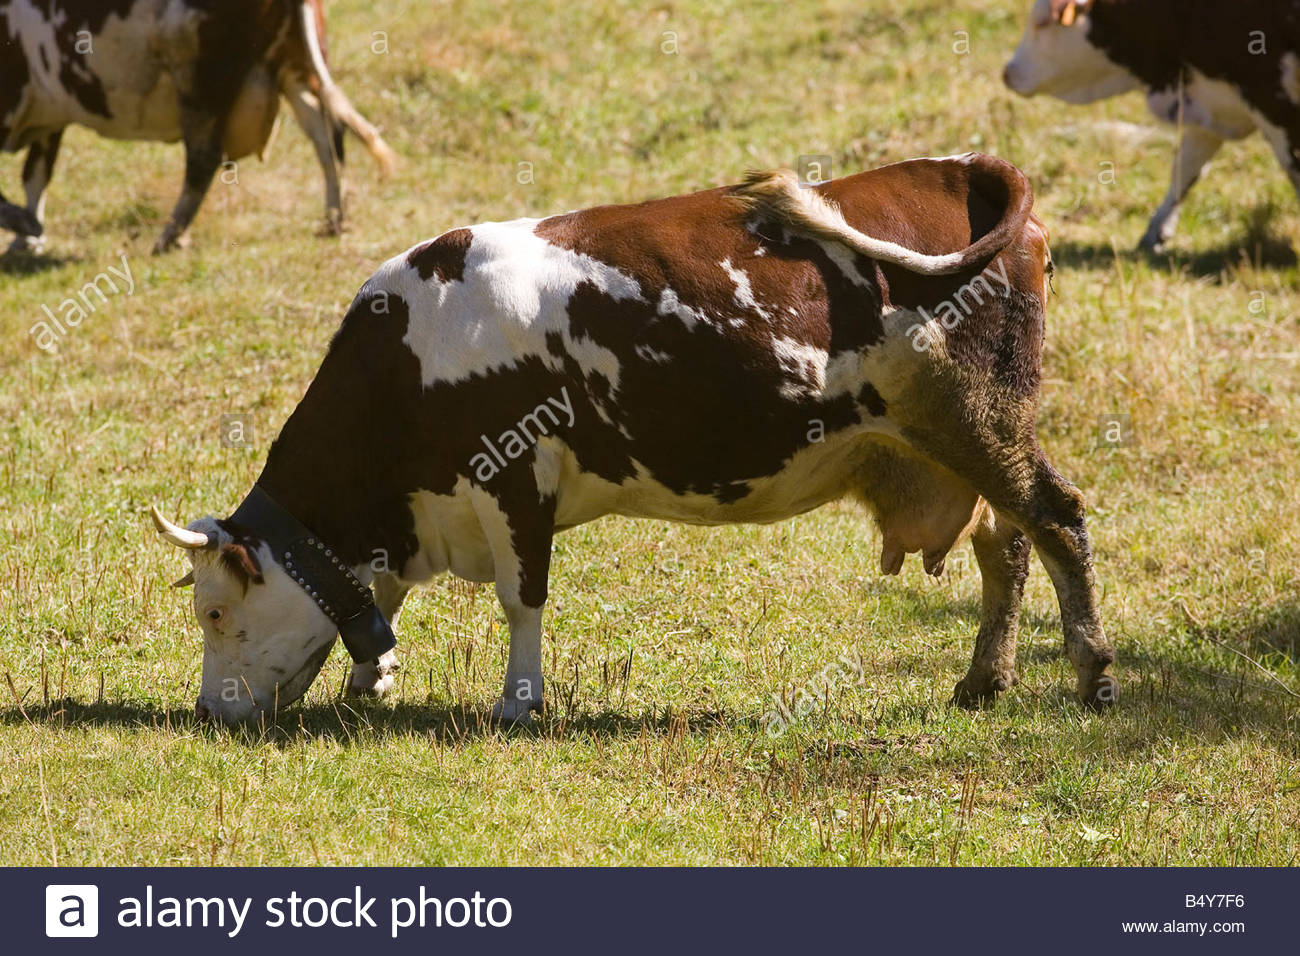 europe,italy,valle d'aosta,pont-sec,cows - Stock Image